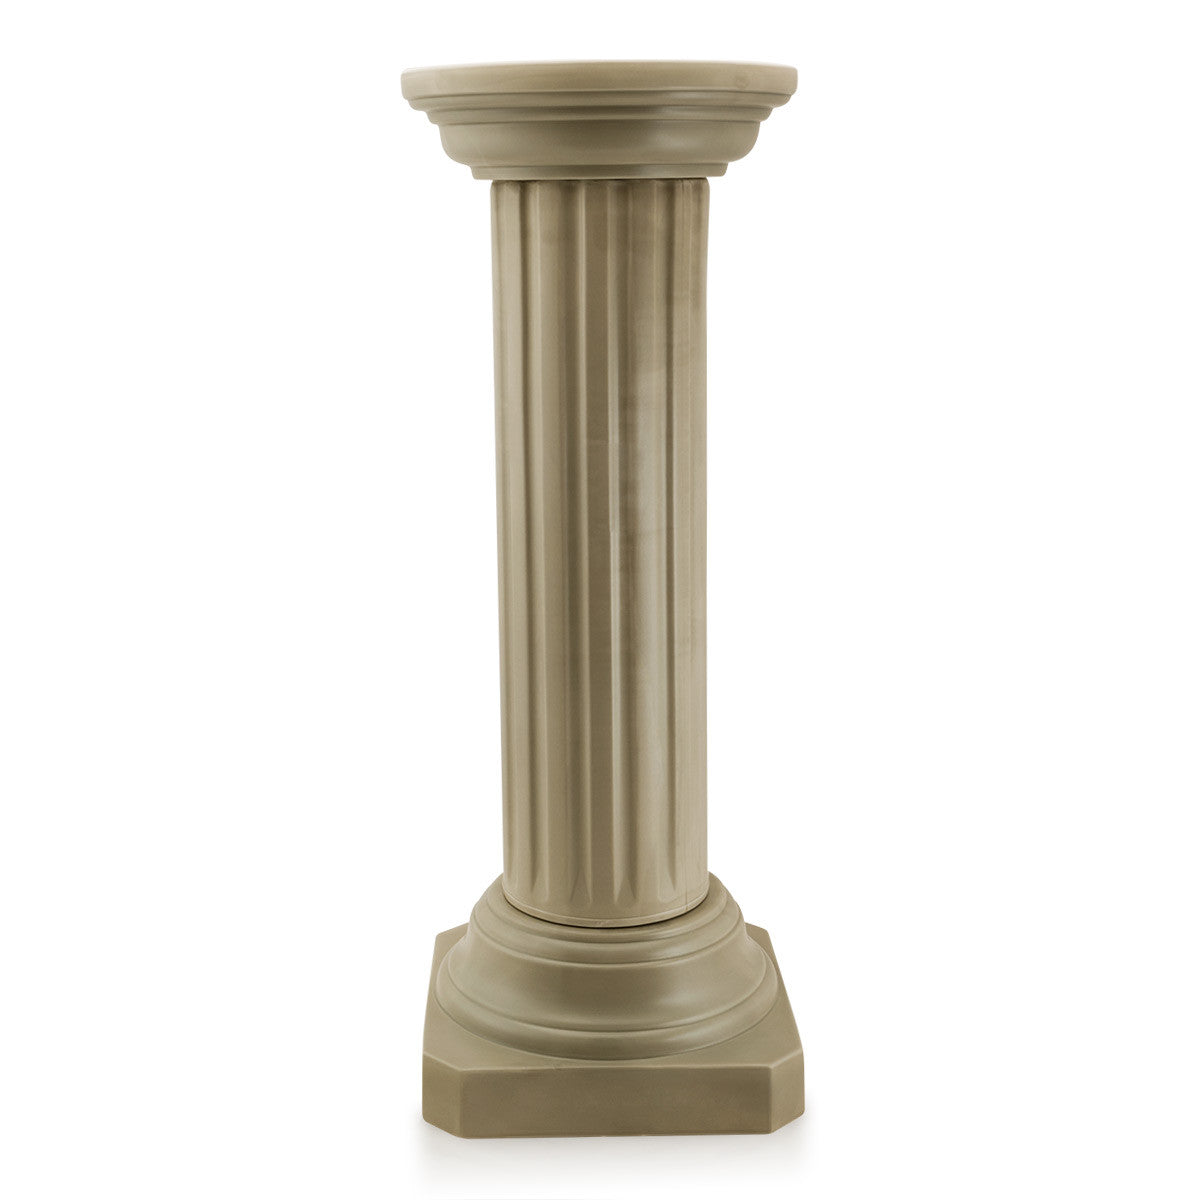 Ribbed shaft column